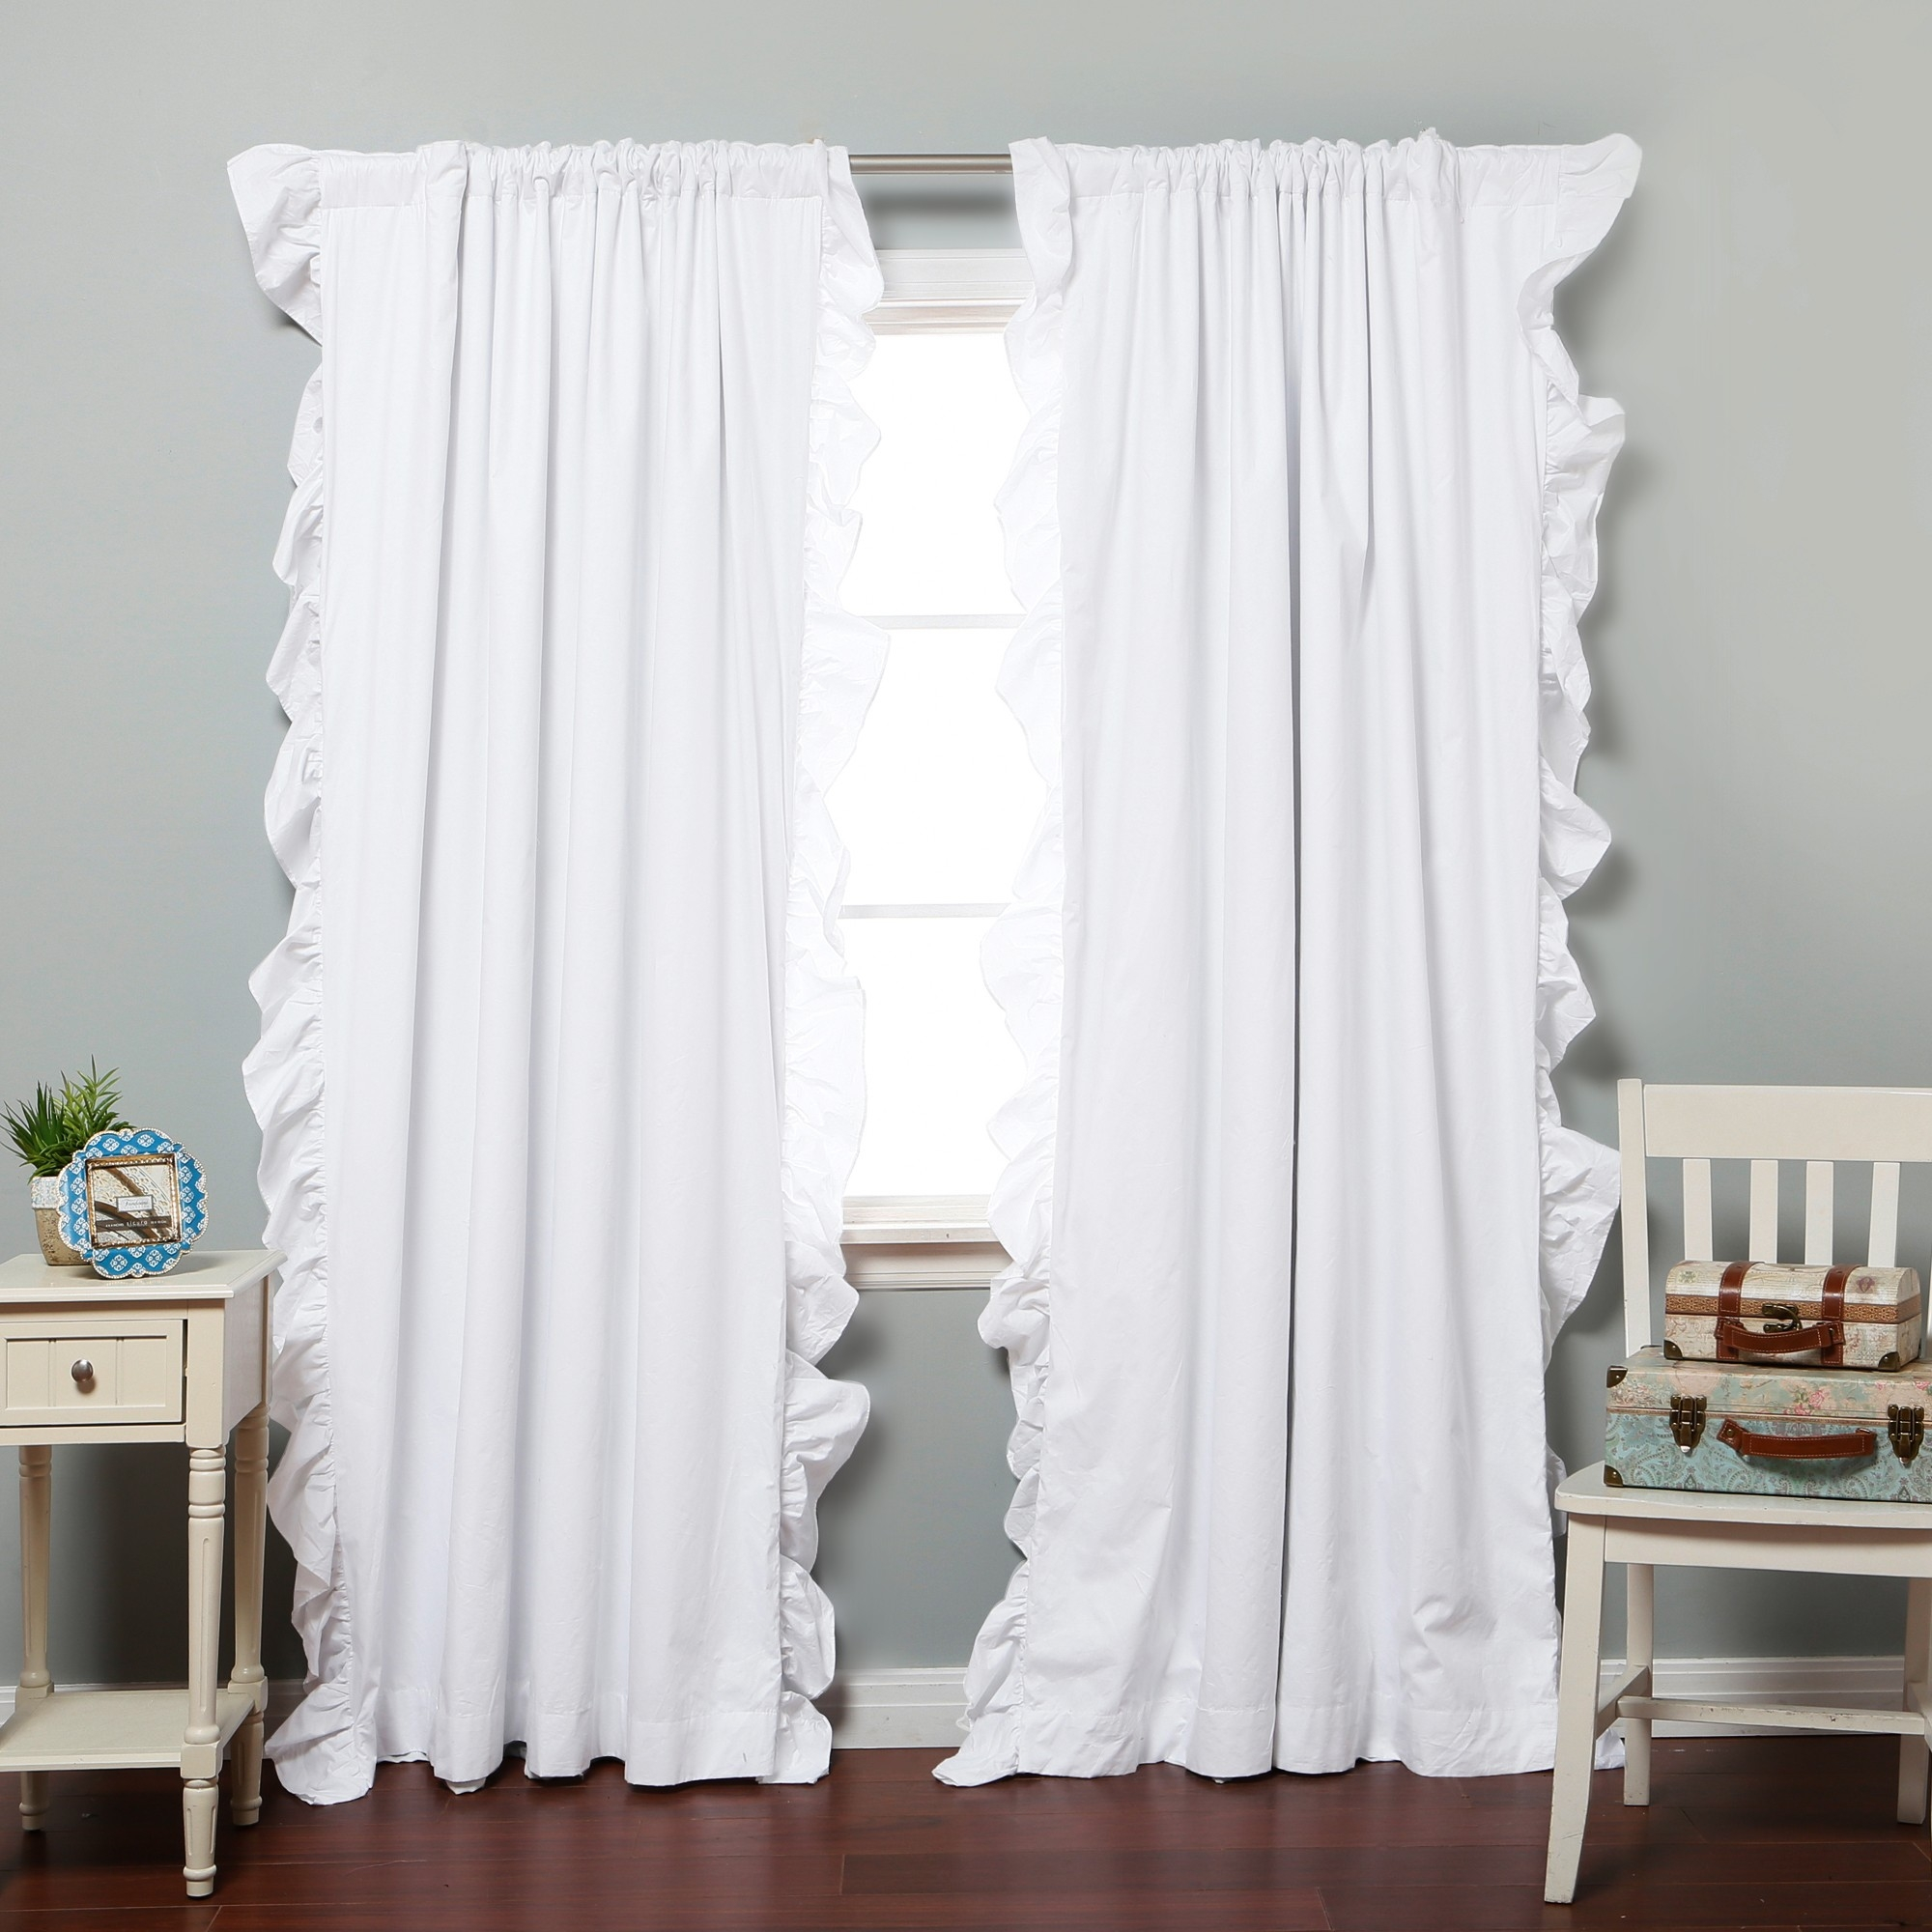 Curtains Inspiring Ruffle Curtains For Home Decoration Ideas Throughout Sheer White Curtain Panels (Image 5 of 25)